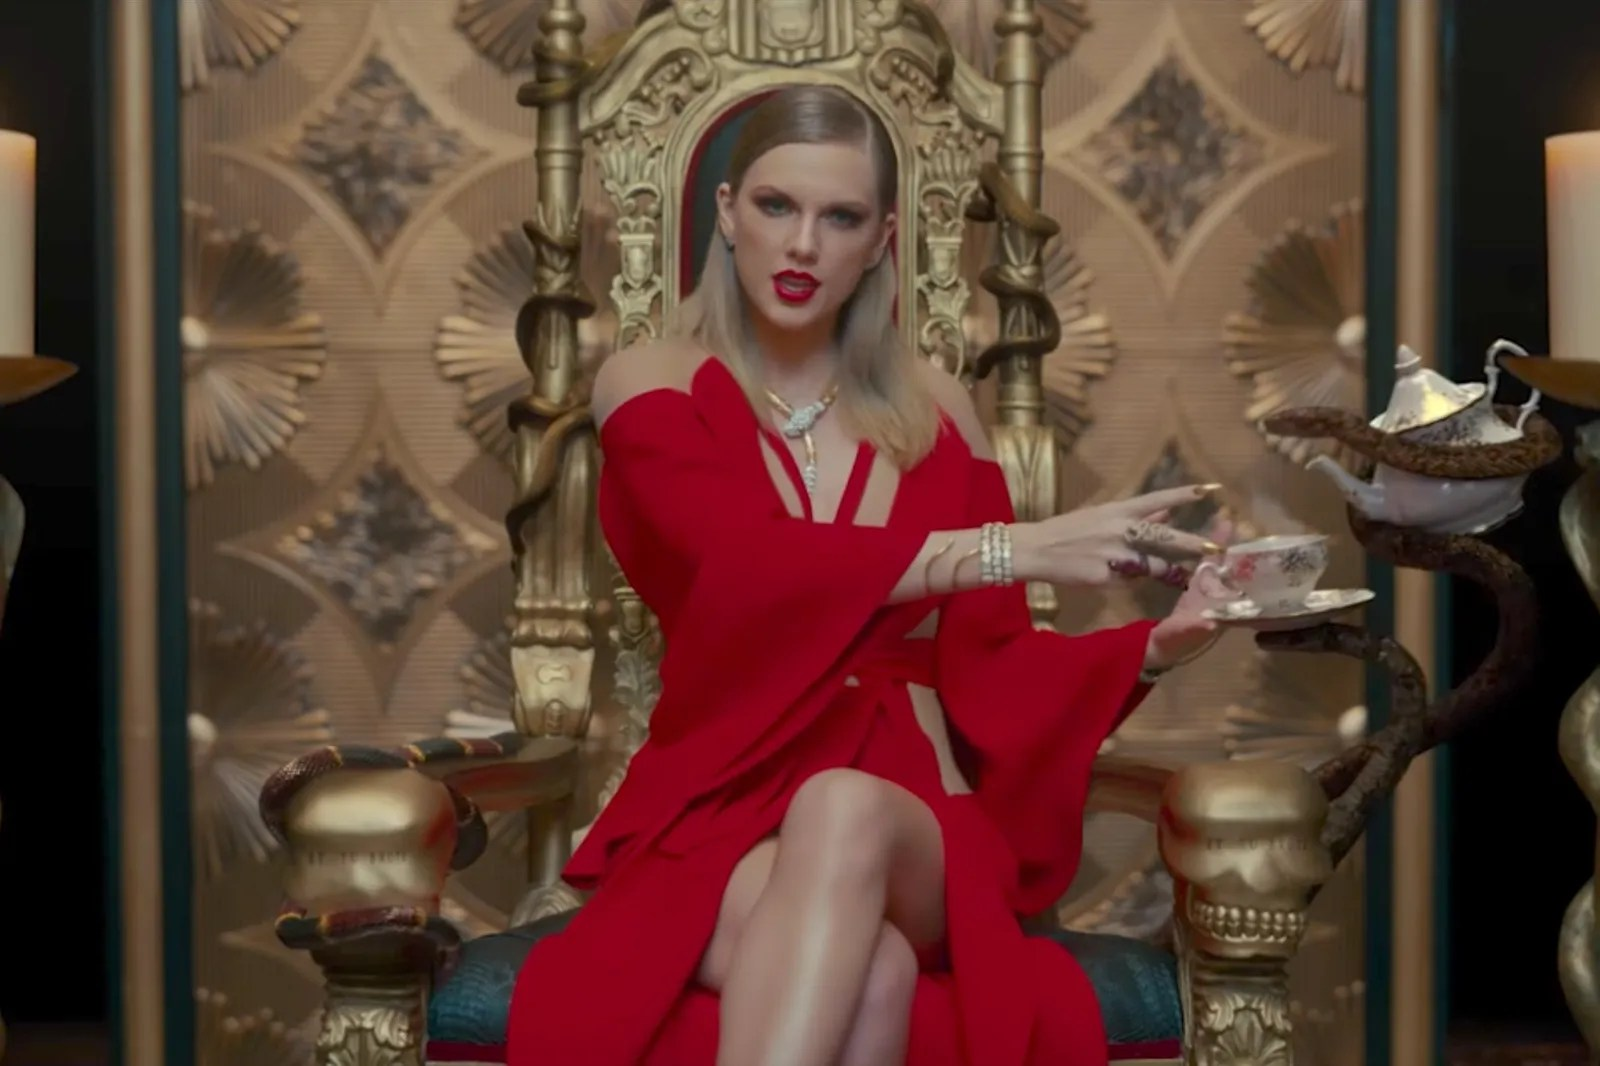 The Yellow Wallpaper Quotes Of Madness How Taylor Swift Is Counting On Fashion To Change Her